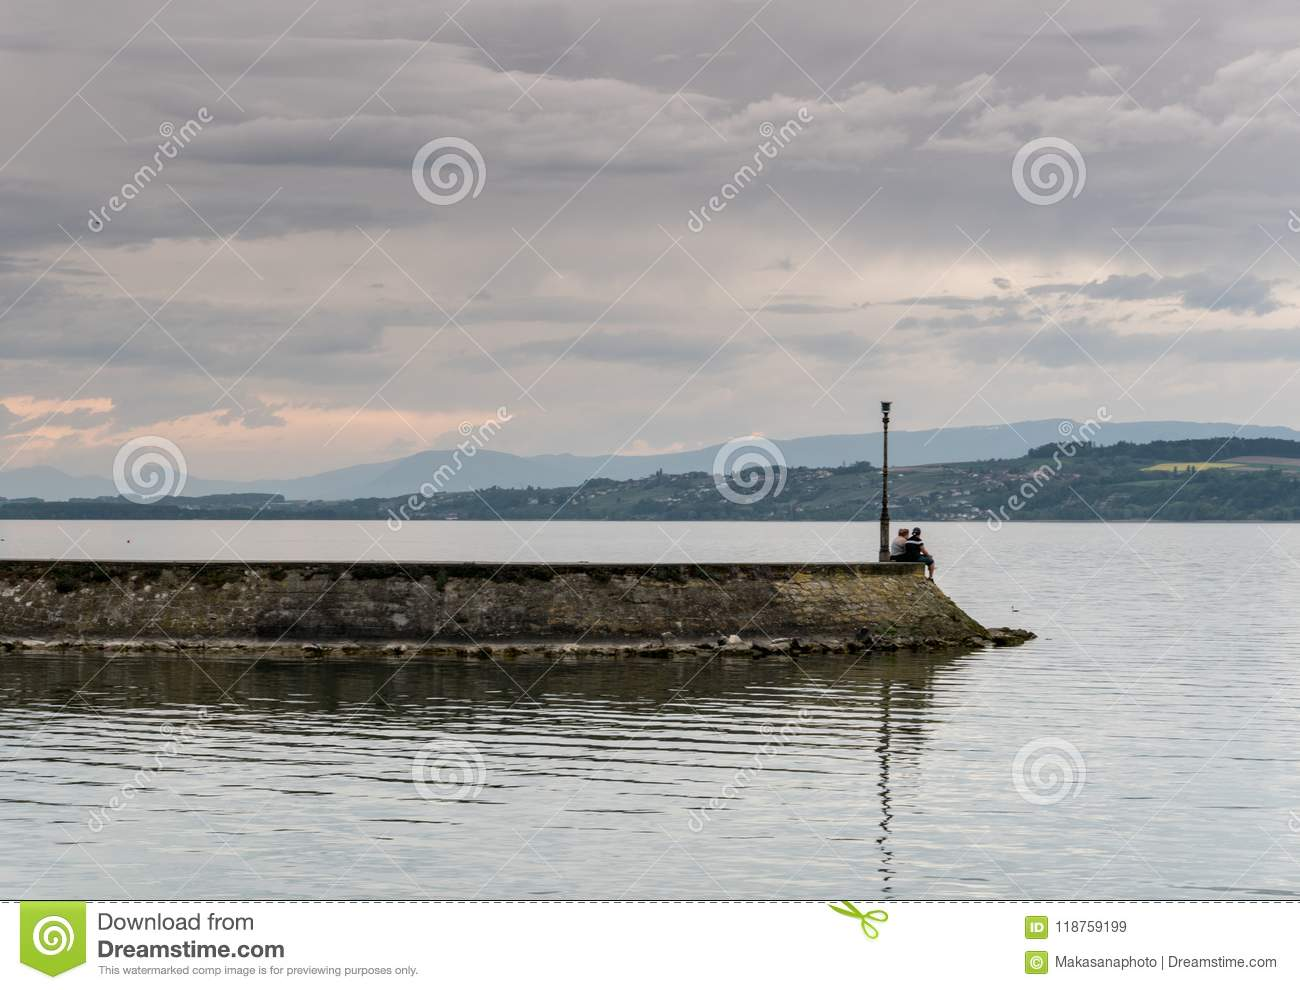 Young lovers sitting at the end of a long pier and admiring the view of a gorgeous lake and mountain landscape in the evening